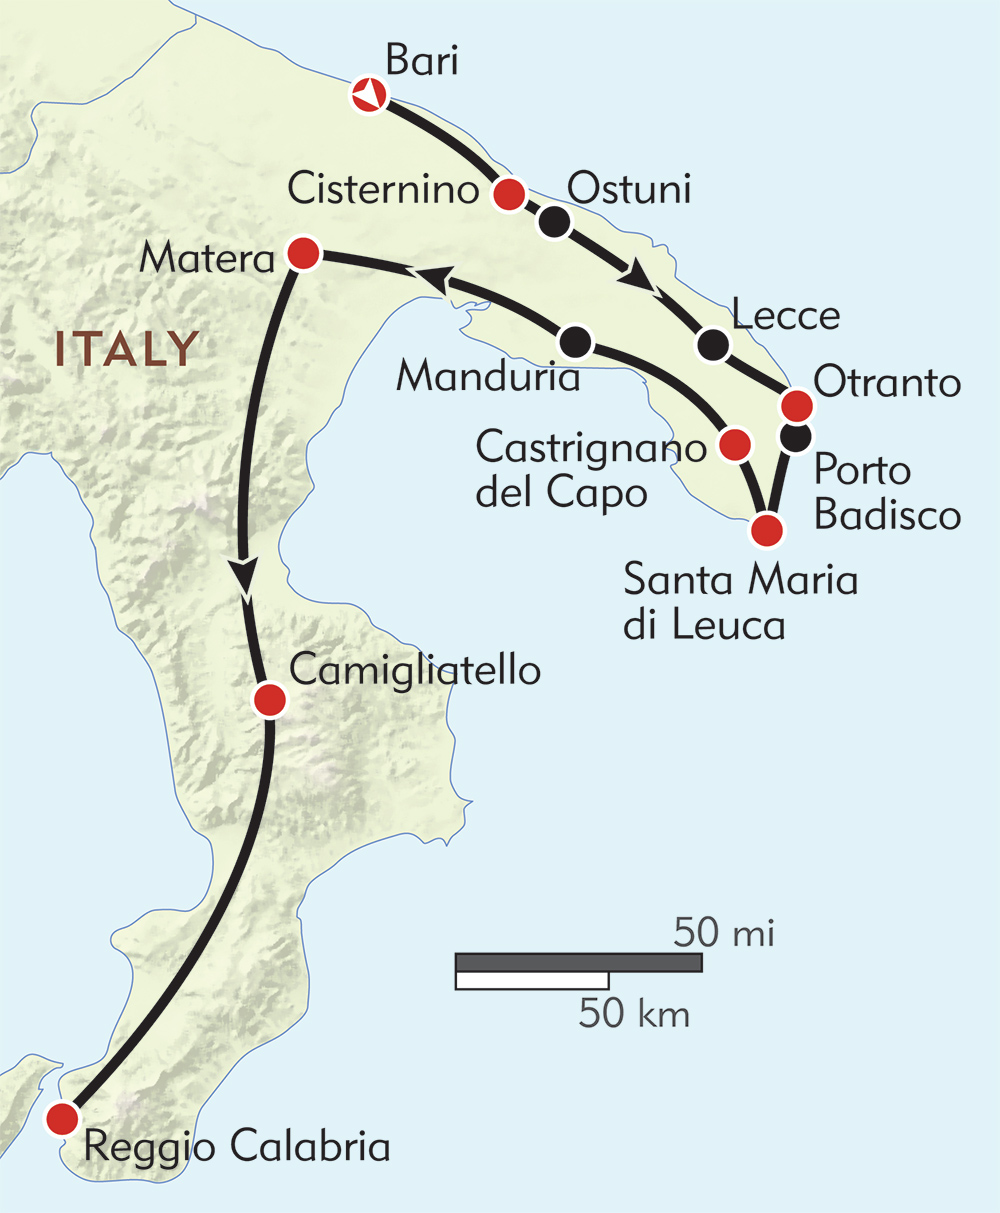 Hiking Puglia and Calabria | Wilderness Travel on sicily italy map, cinque terre italy map, cambria italy map, campobasso italy map, cumae italy map, aosta valley italy map, azzurro italy map, sacco italy map, acireale italy map, formia italy map, baiae italy map, sardinia map, vatican city italy map, milan italy map, abruzzo italy map, salerno italy map, palermo map, potenza italy map, basilica italy map, regions of italy, naples italy map,